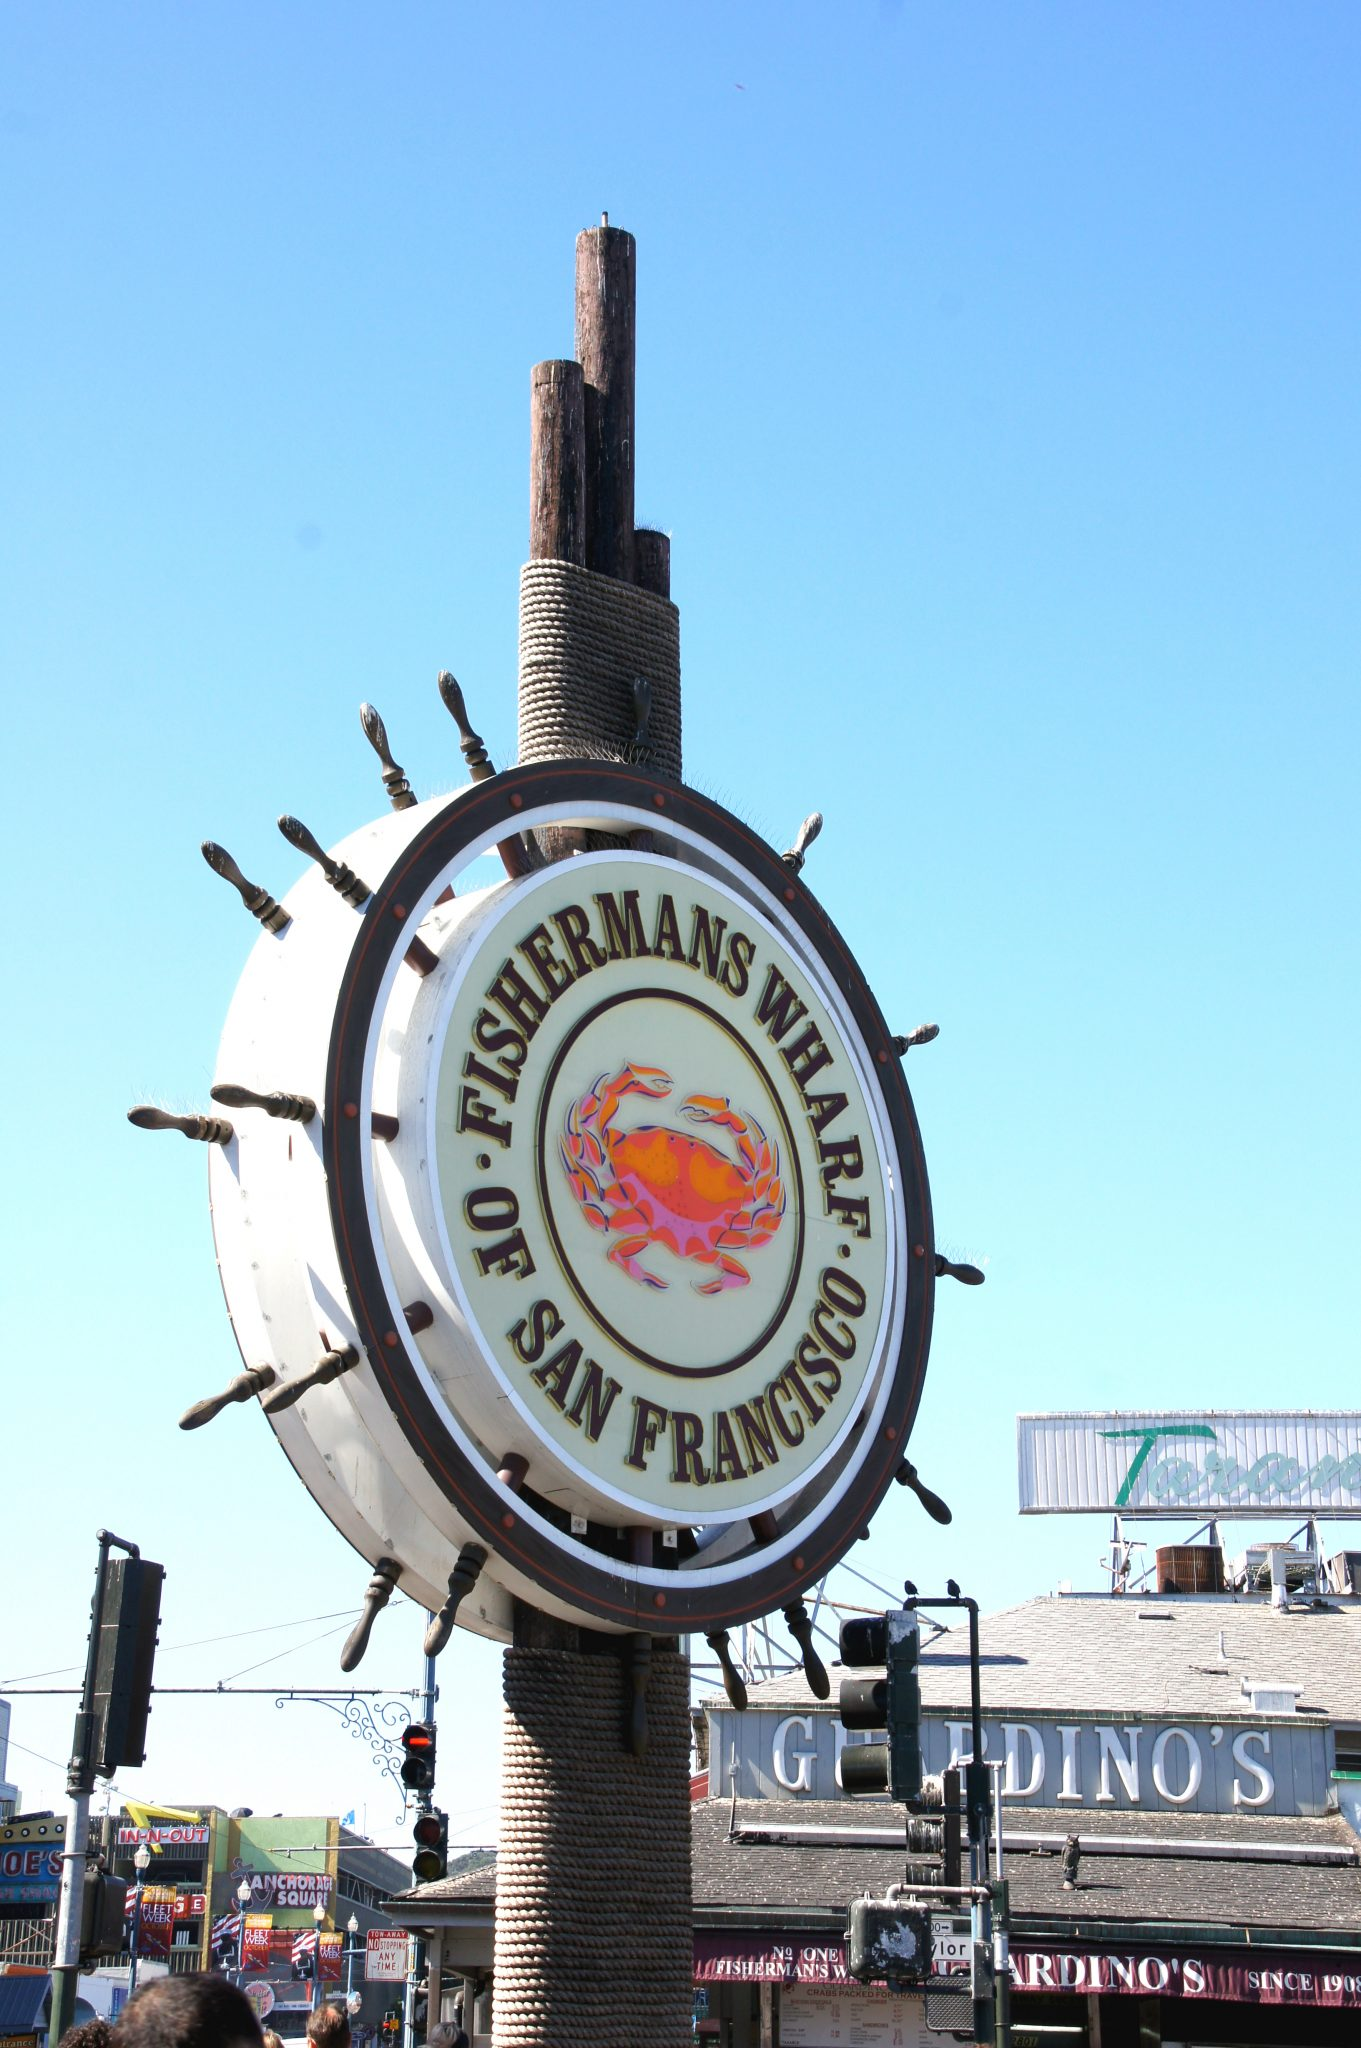 Sign of Fisherman's Wharf of San Francisco